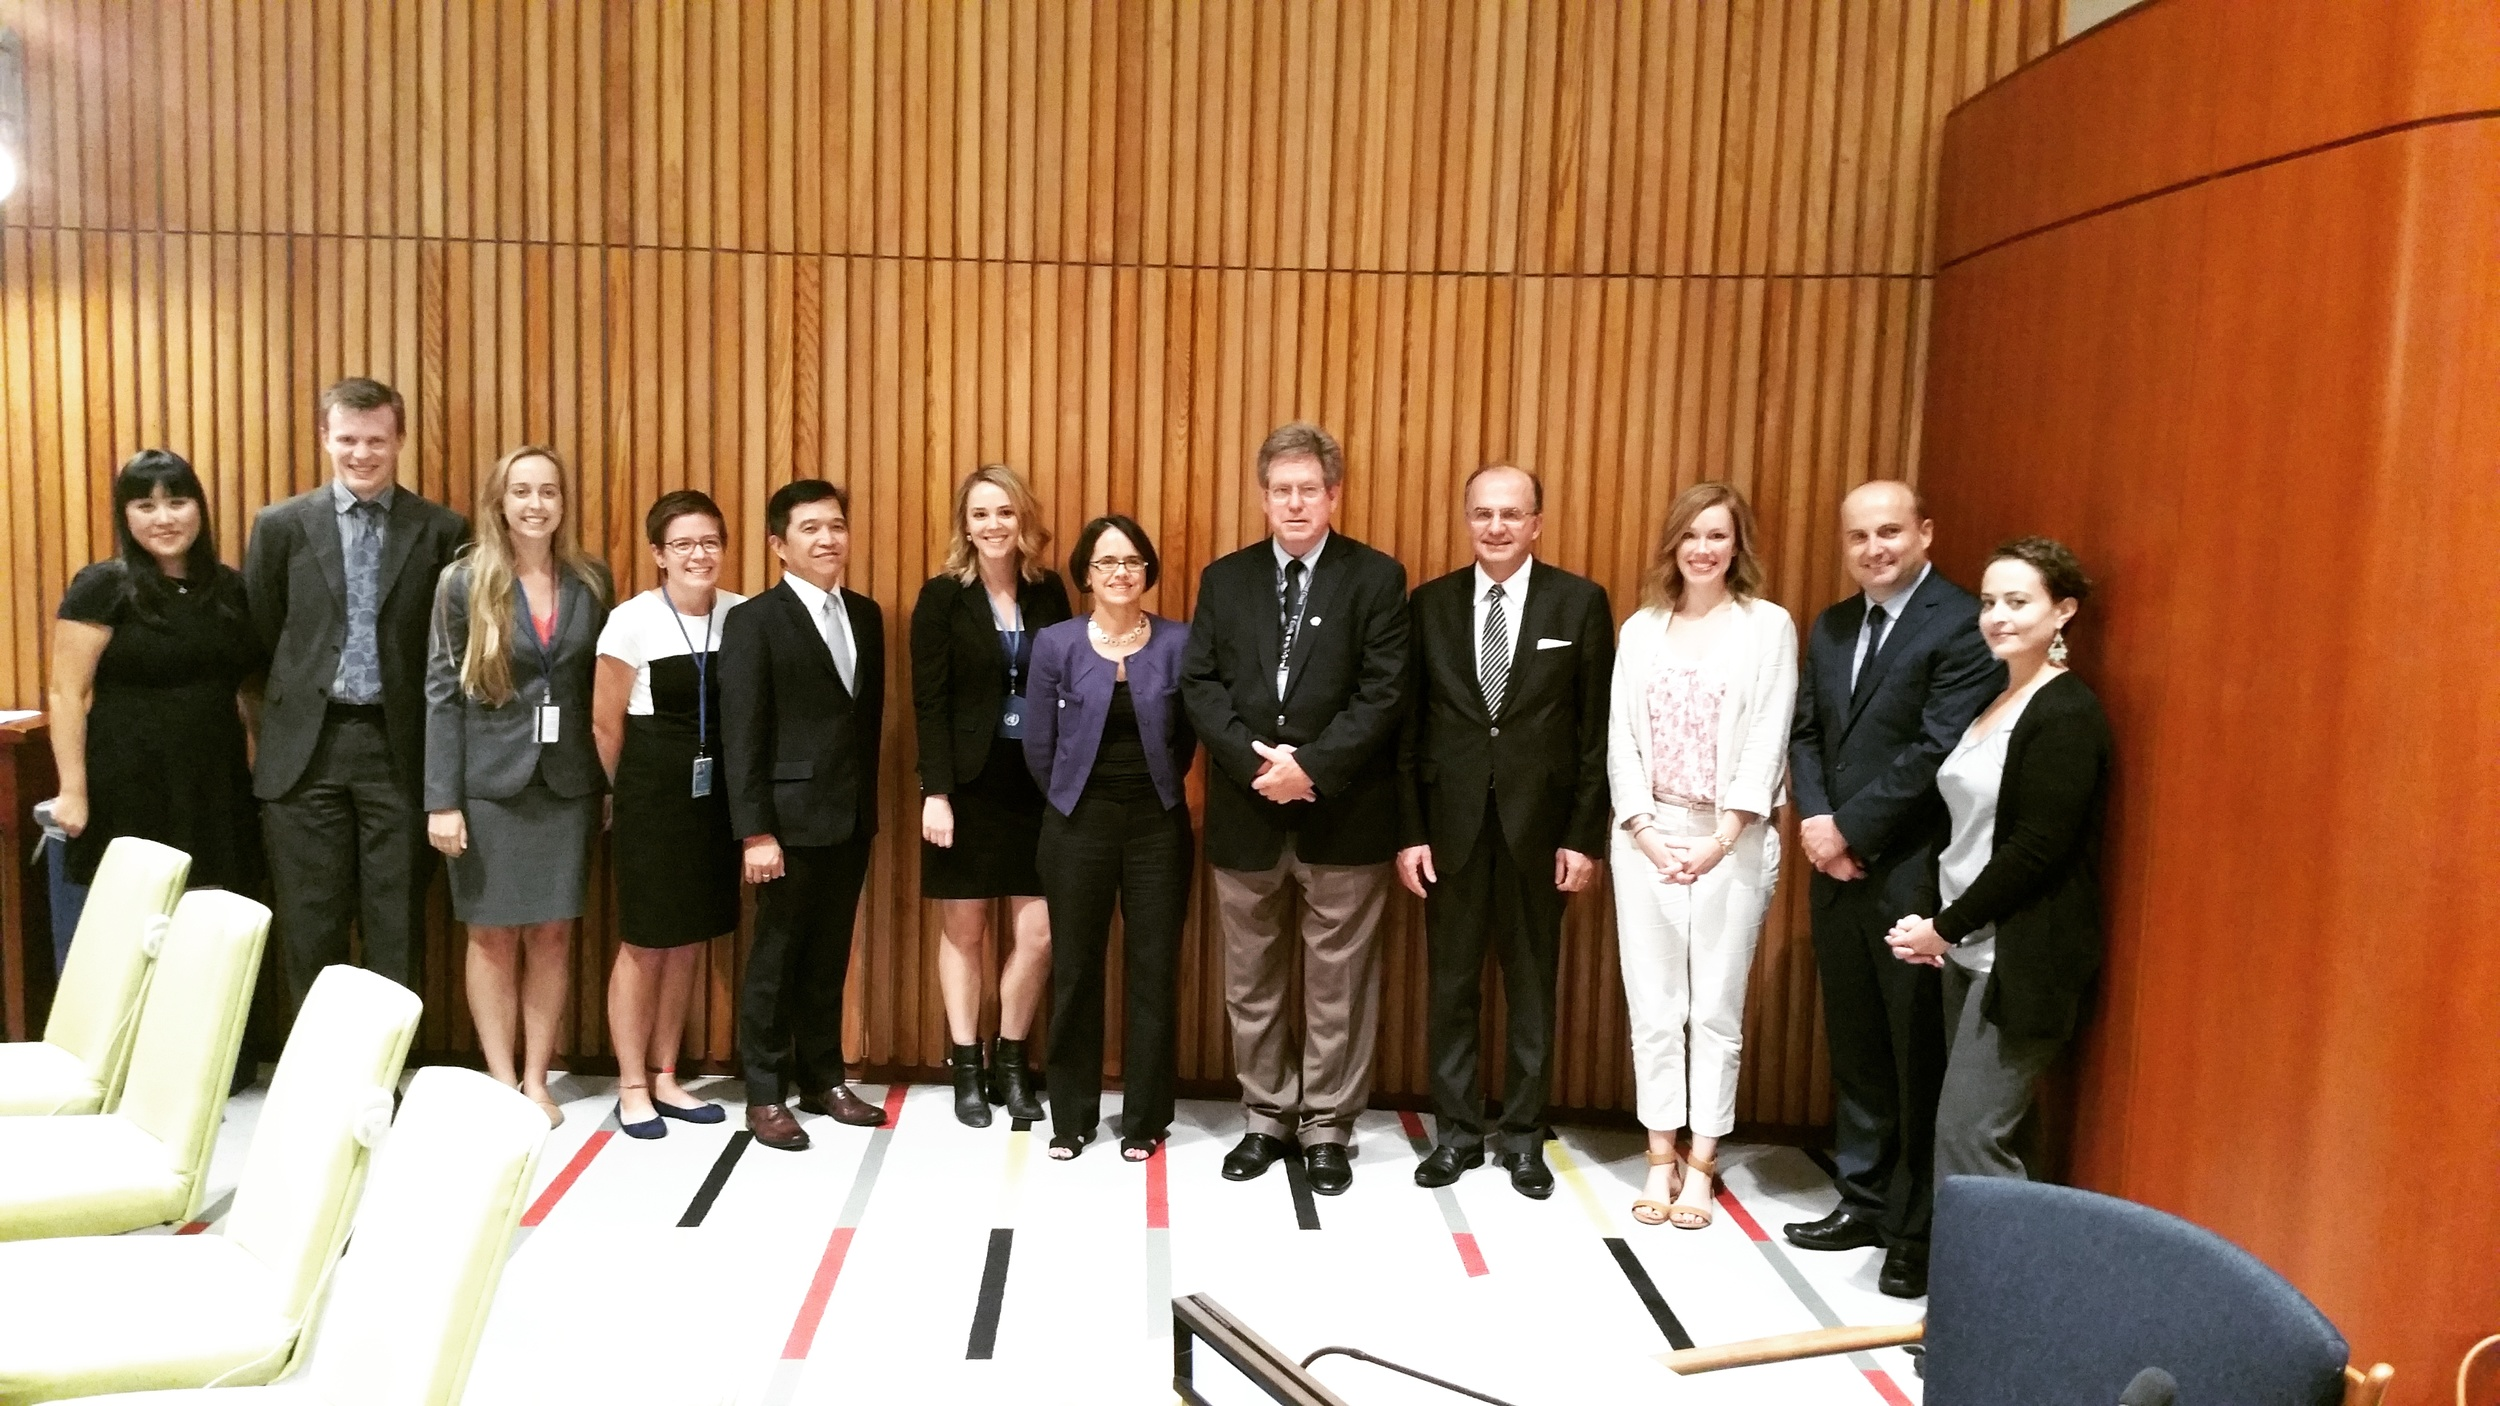 ICRtoP and civil society representatives with Dr. Jennifer Welsh